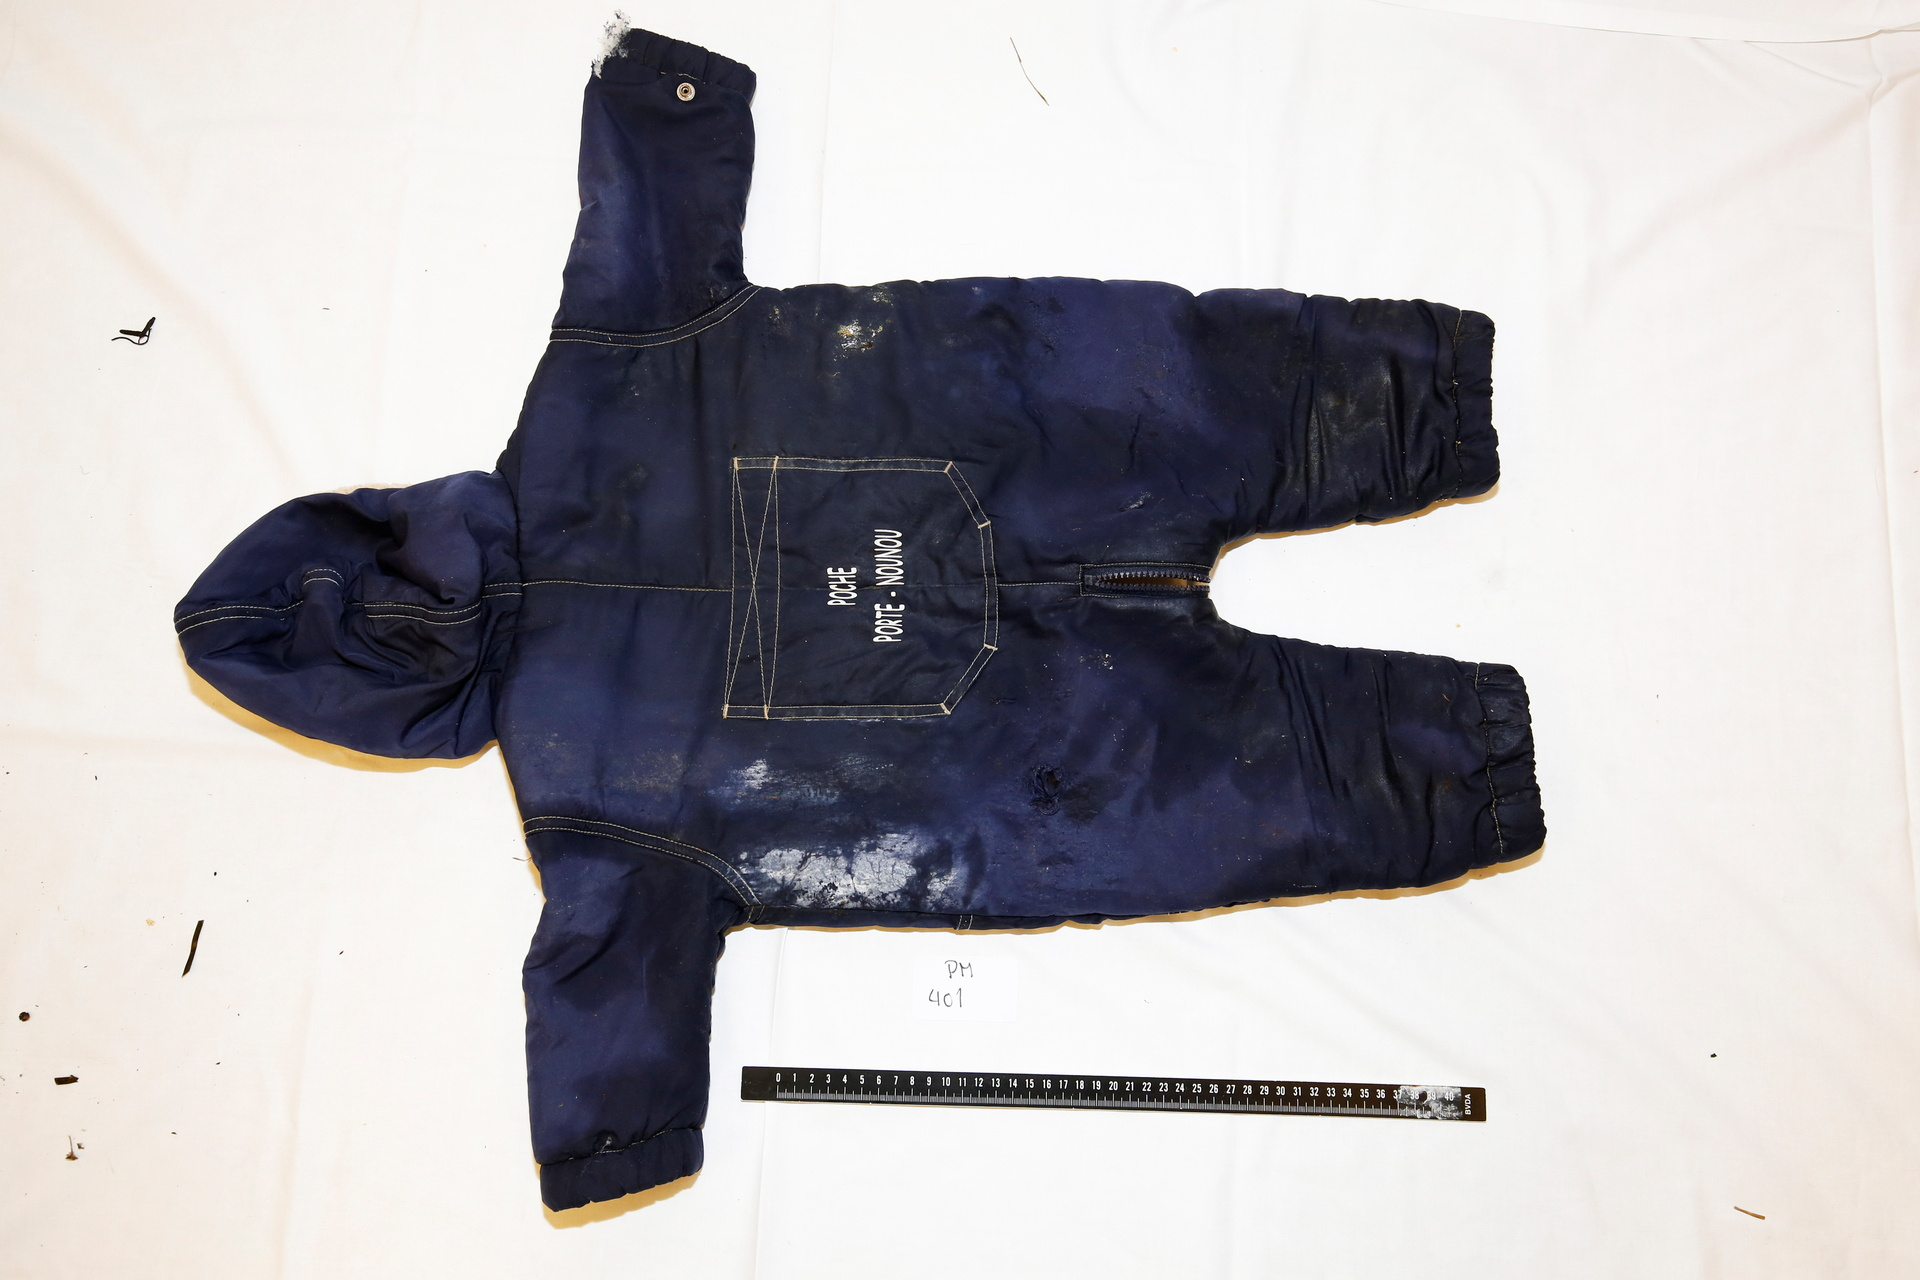 A police handout photo shows clothes belonging to the 18-month old Iranian migrant boy Artin Irannezhad whose body washed up on the southwest coast of Norway on New Year's Day, released in Norway, June 7, 2021. Norwegian Police/Handout via REUTERS